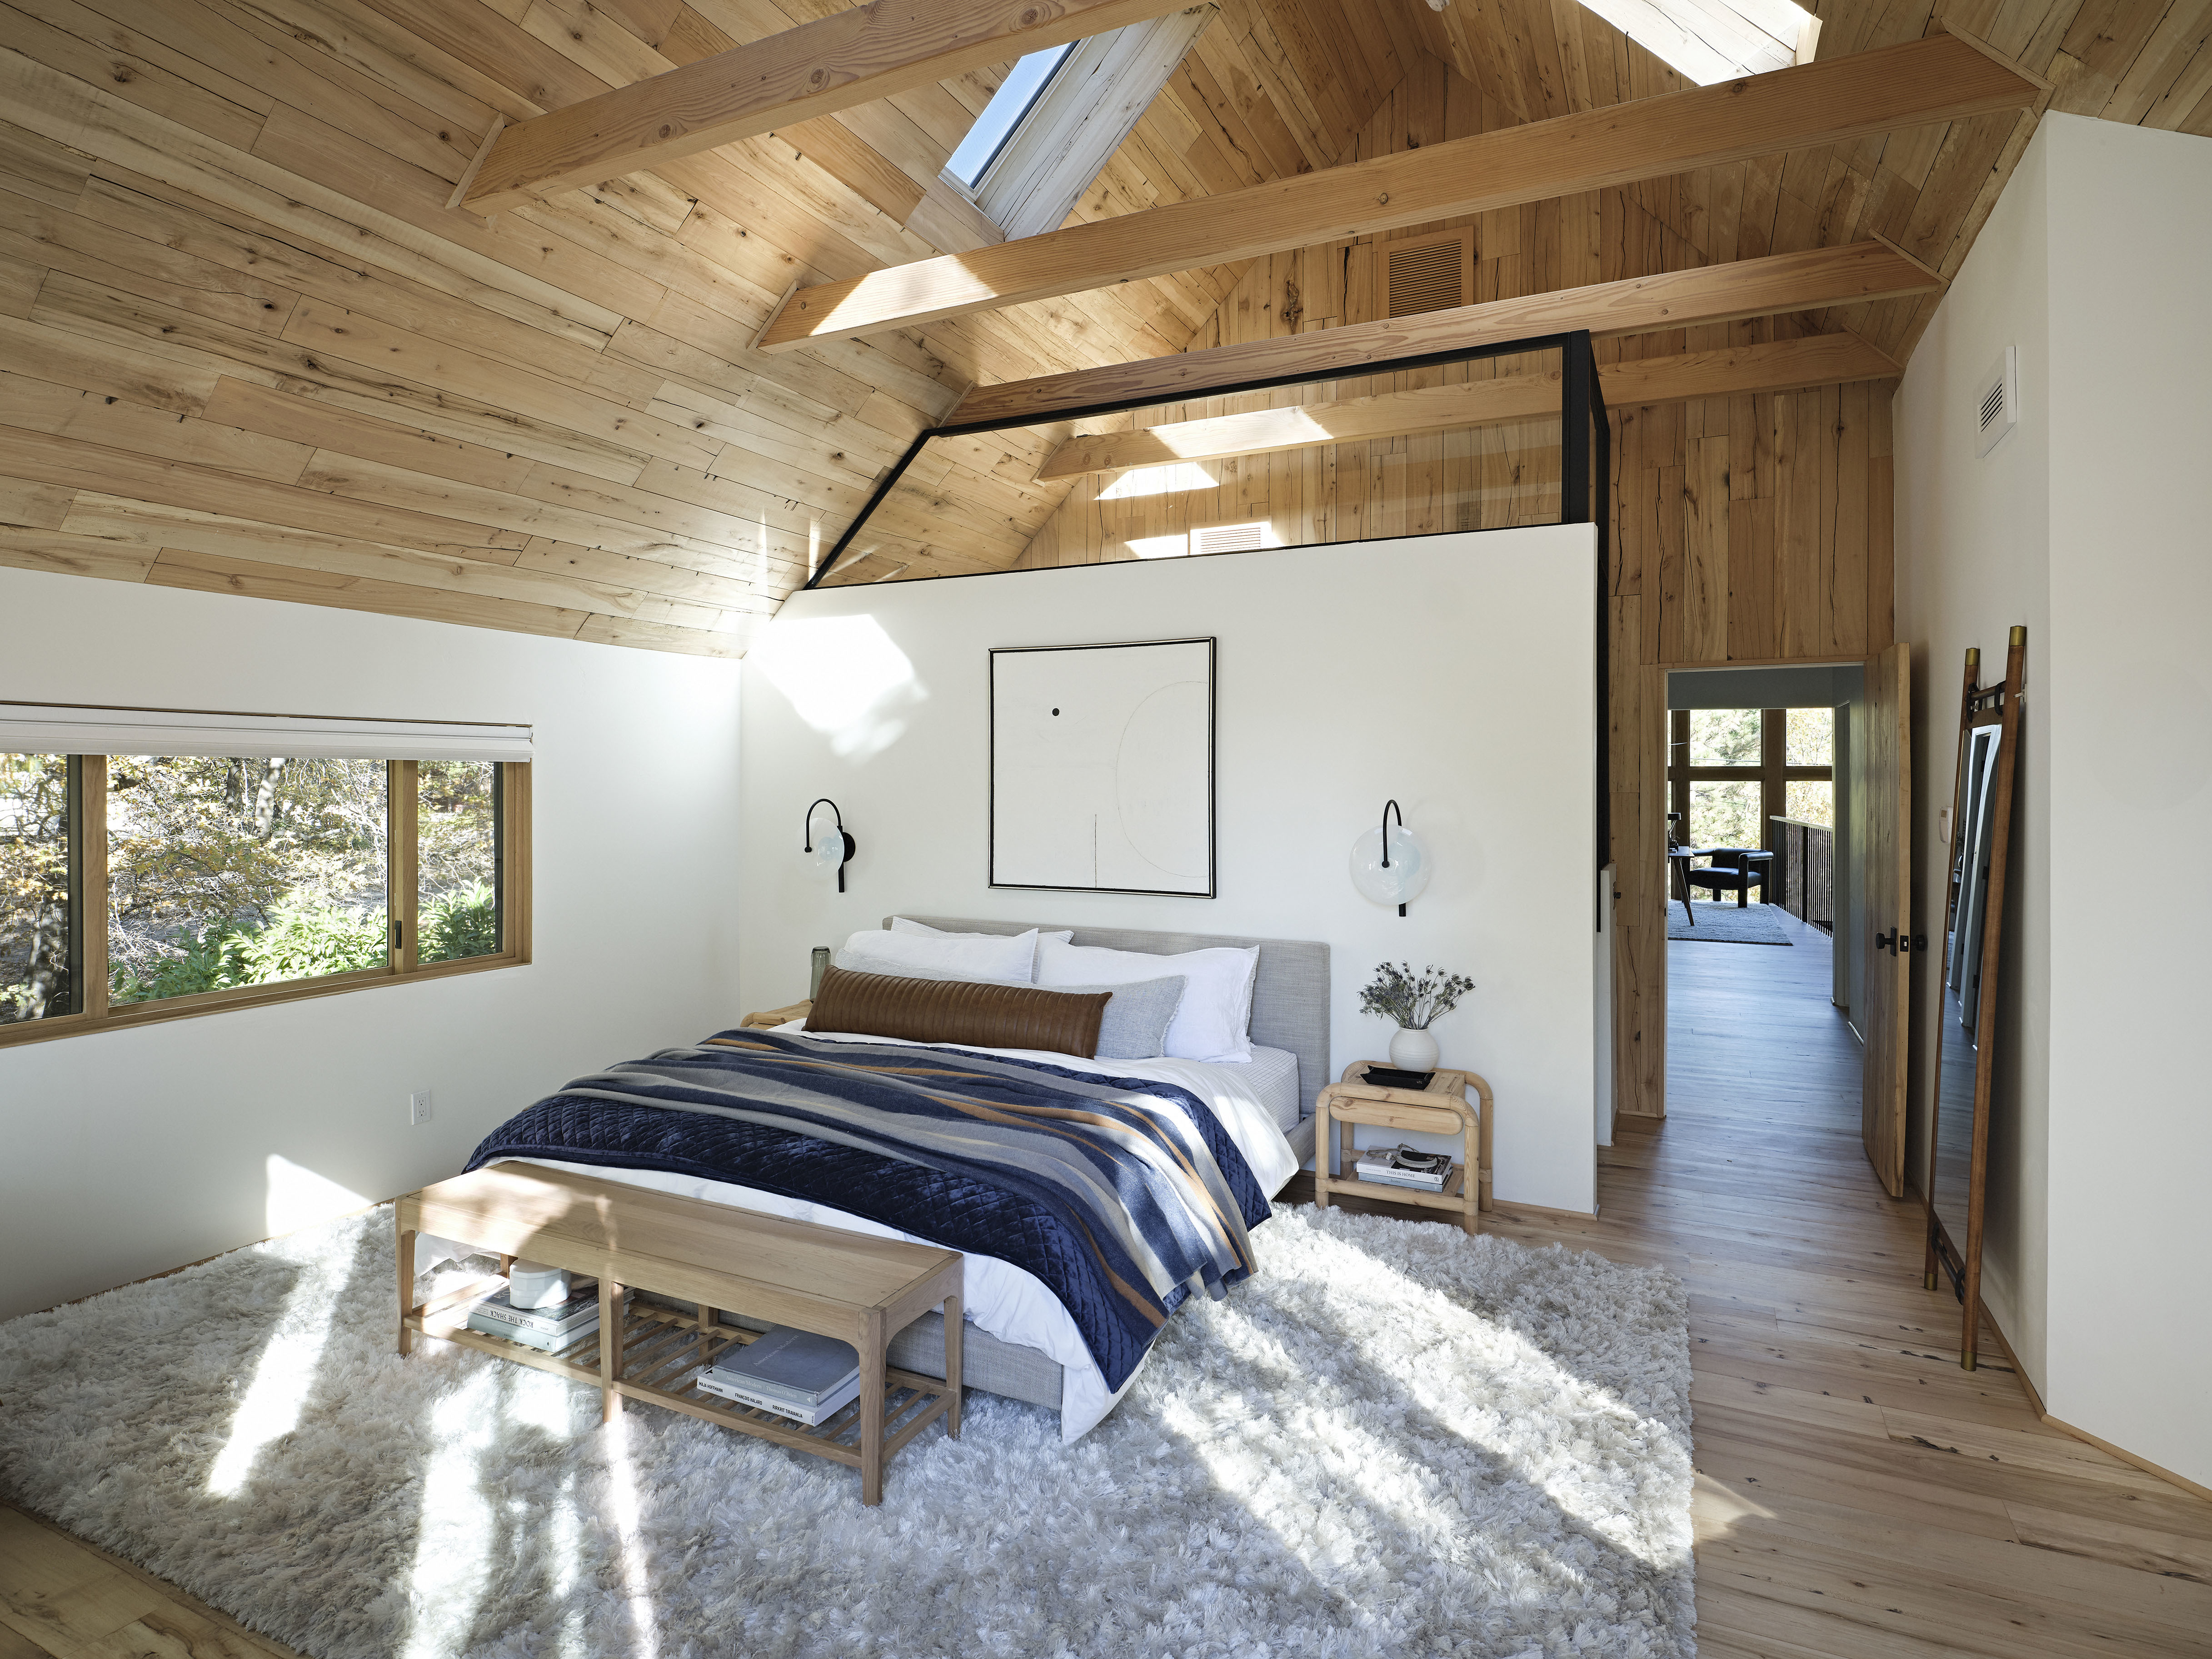 Bedroom with wood clad ceiling, four skylights and a bed layered with blue and terra cotta blankets